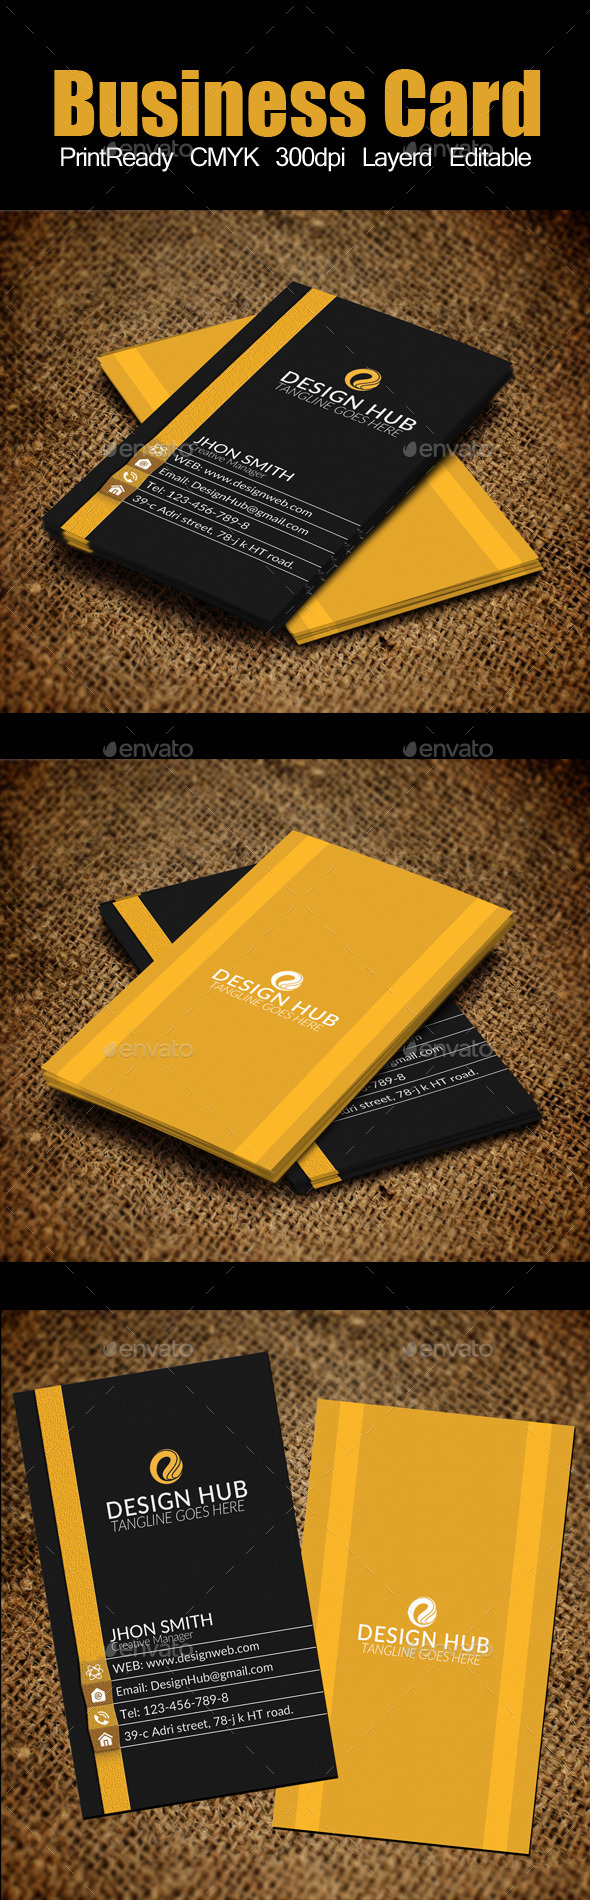 Vertical Business Card Template by Designhub719 on DeviantArt